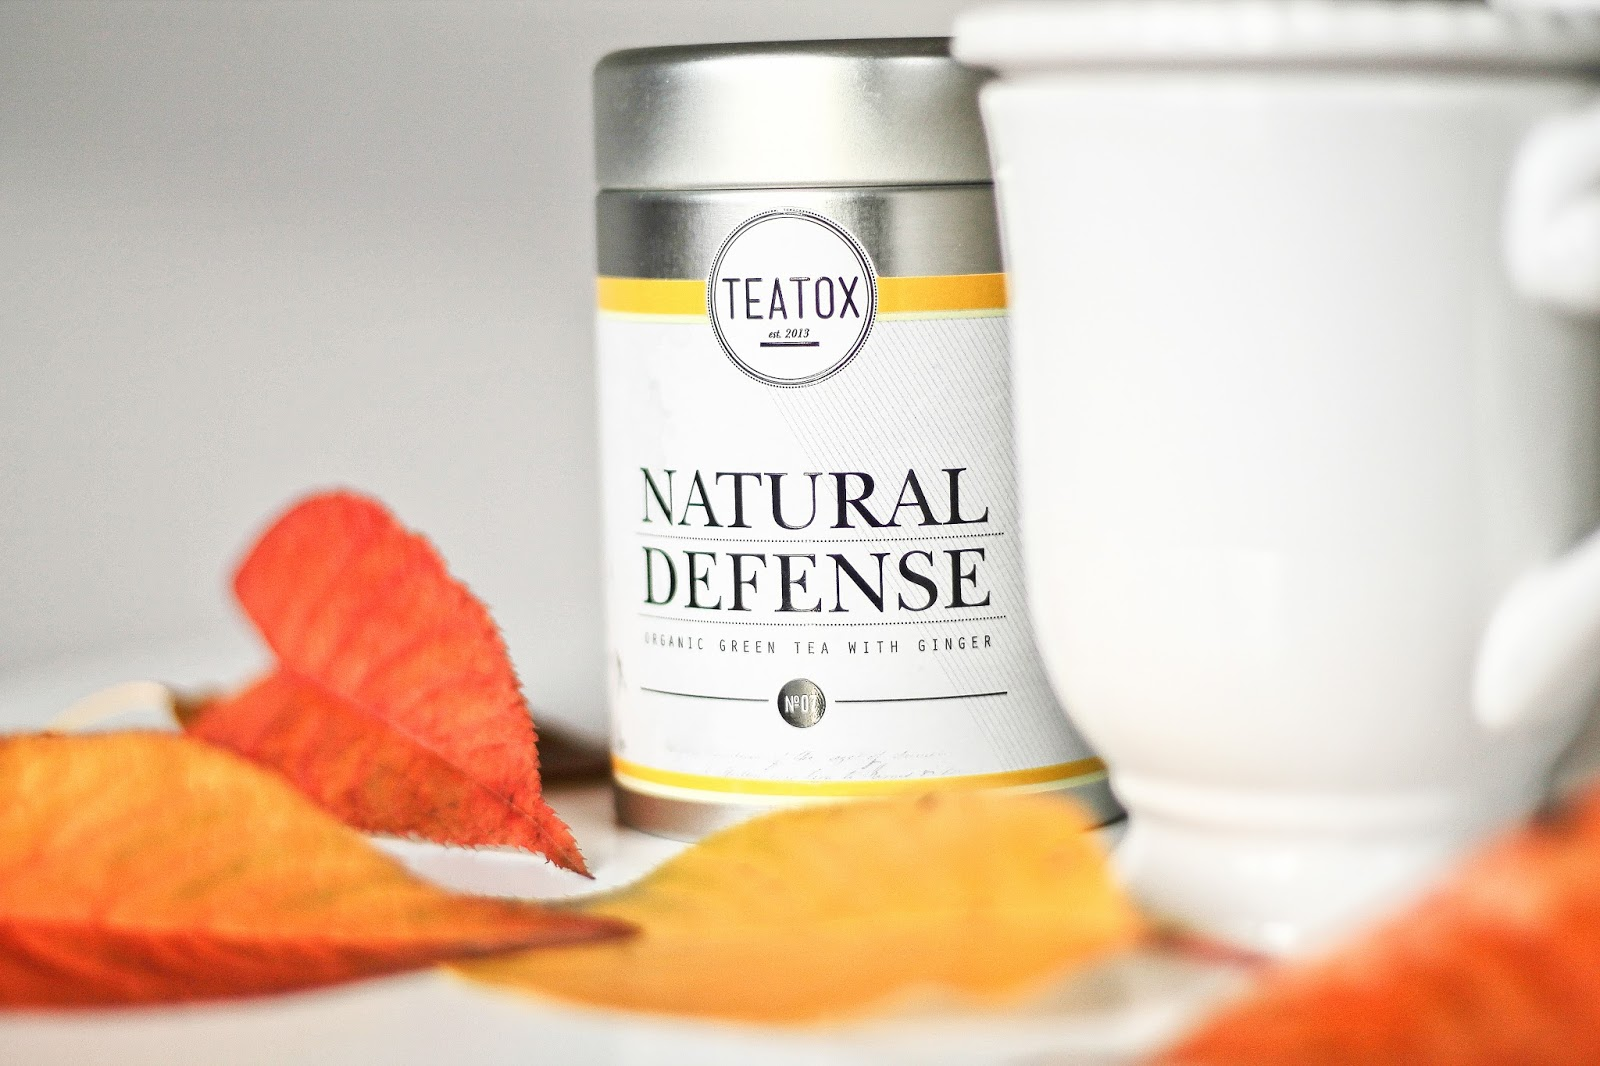 teatox tea tox detox detoxifiant thé the time mincir faire attention rééquilibrage alimentaire cure skinny detox mug mr wonderful good morning good night matin soir defense natural défense immunitaire